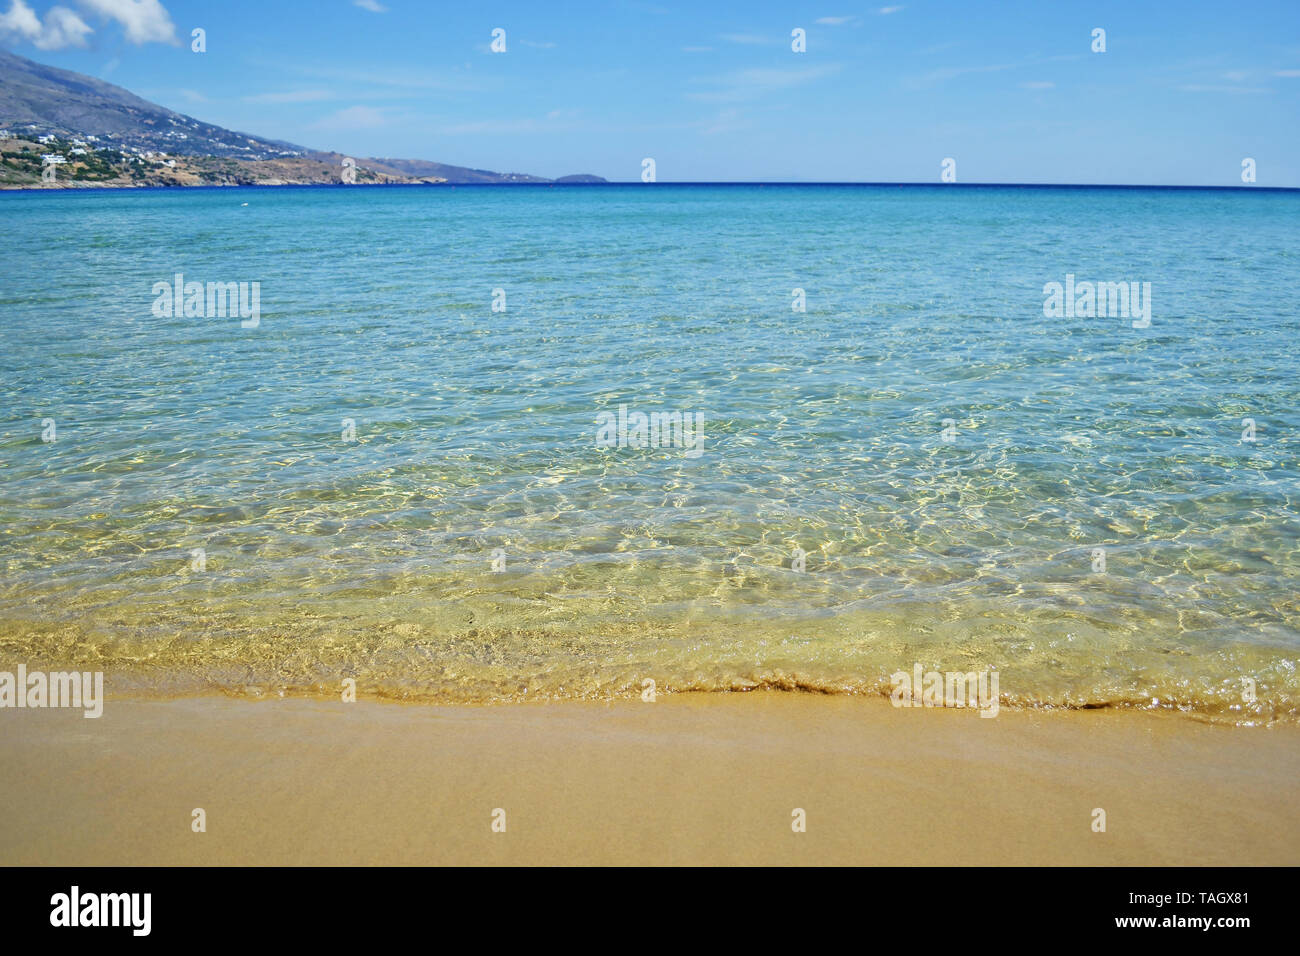 landscape of Chrisi Ammos beach - means Golden Sand - in Andros island Greece Stock Photo